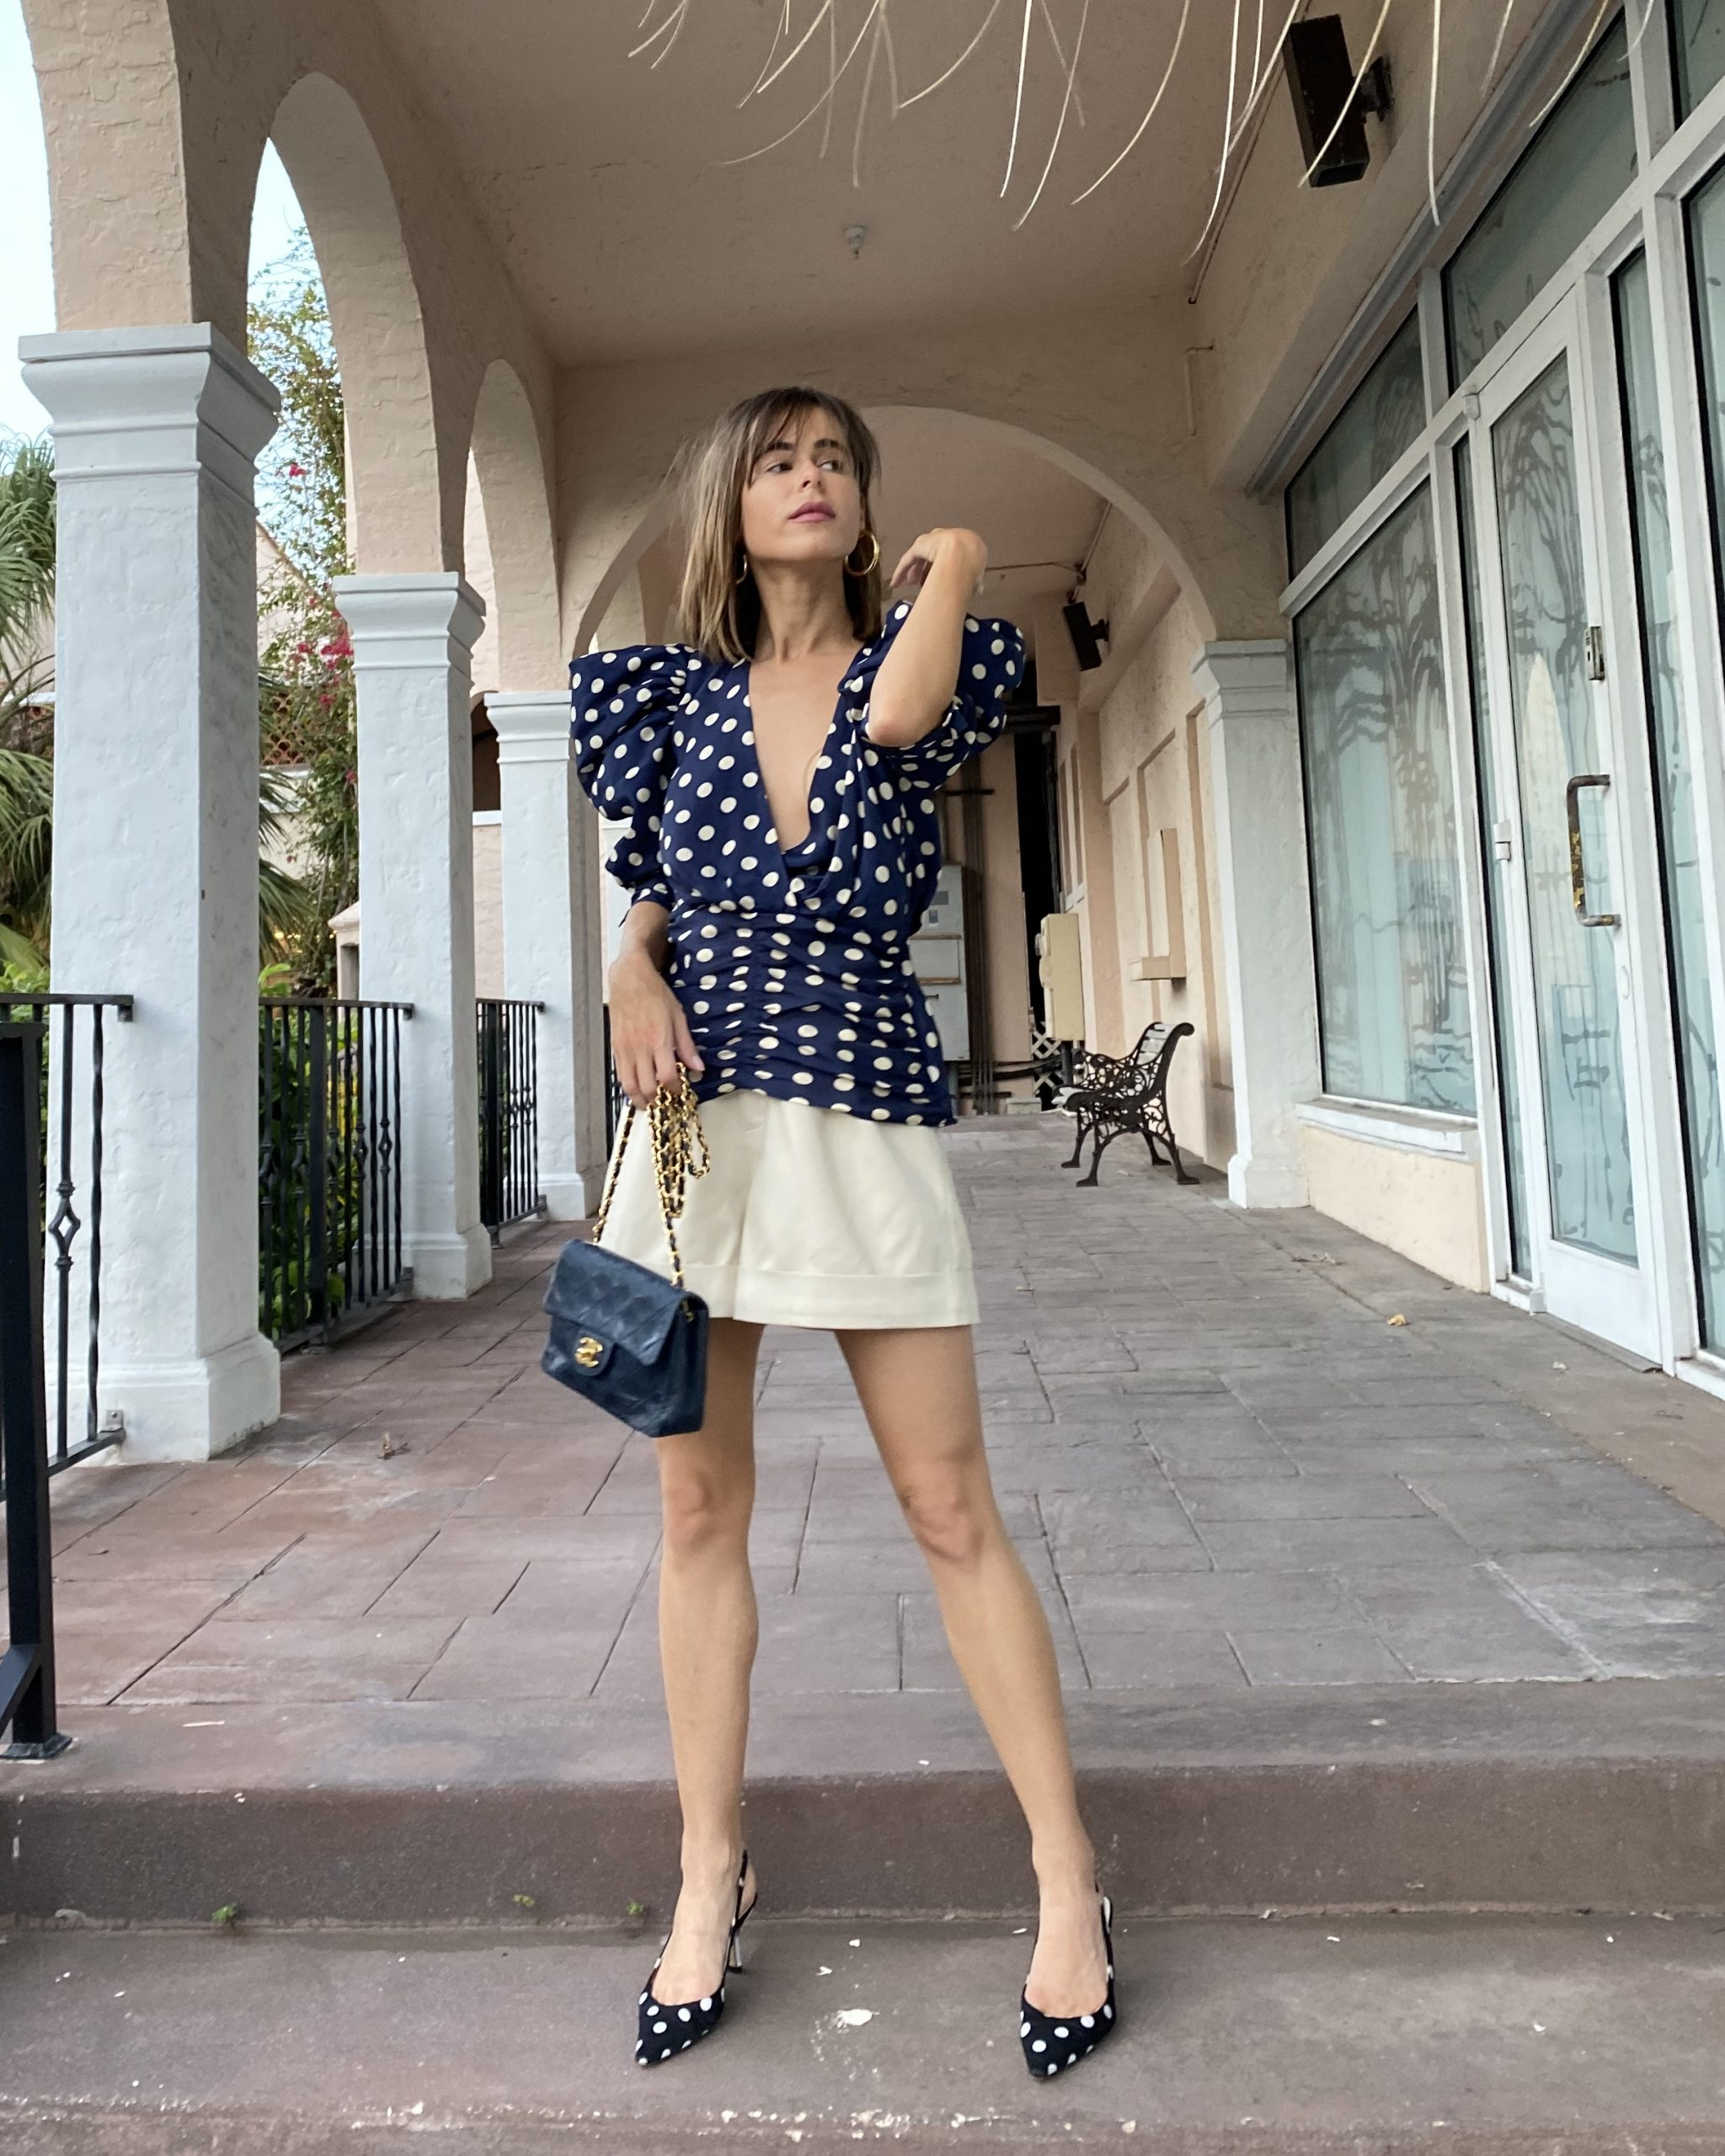 Fashion Blogger Stephanie Hill wears #ootd featuring Ronny Kobo blouse on The Style Bungalow